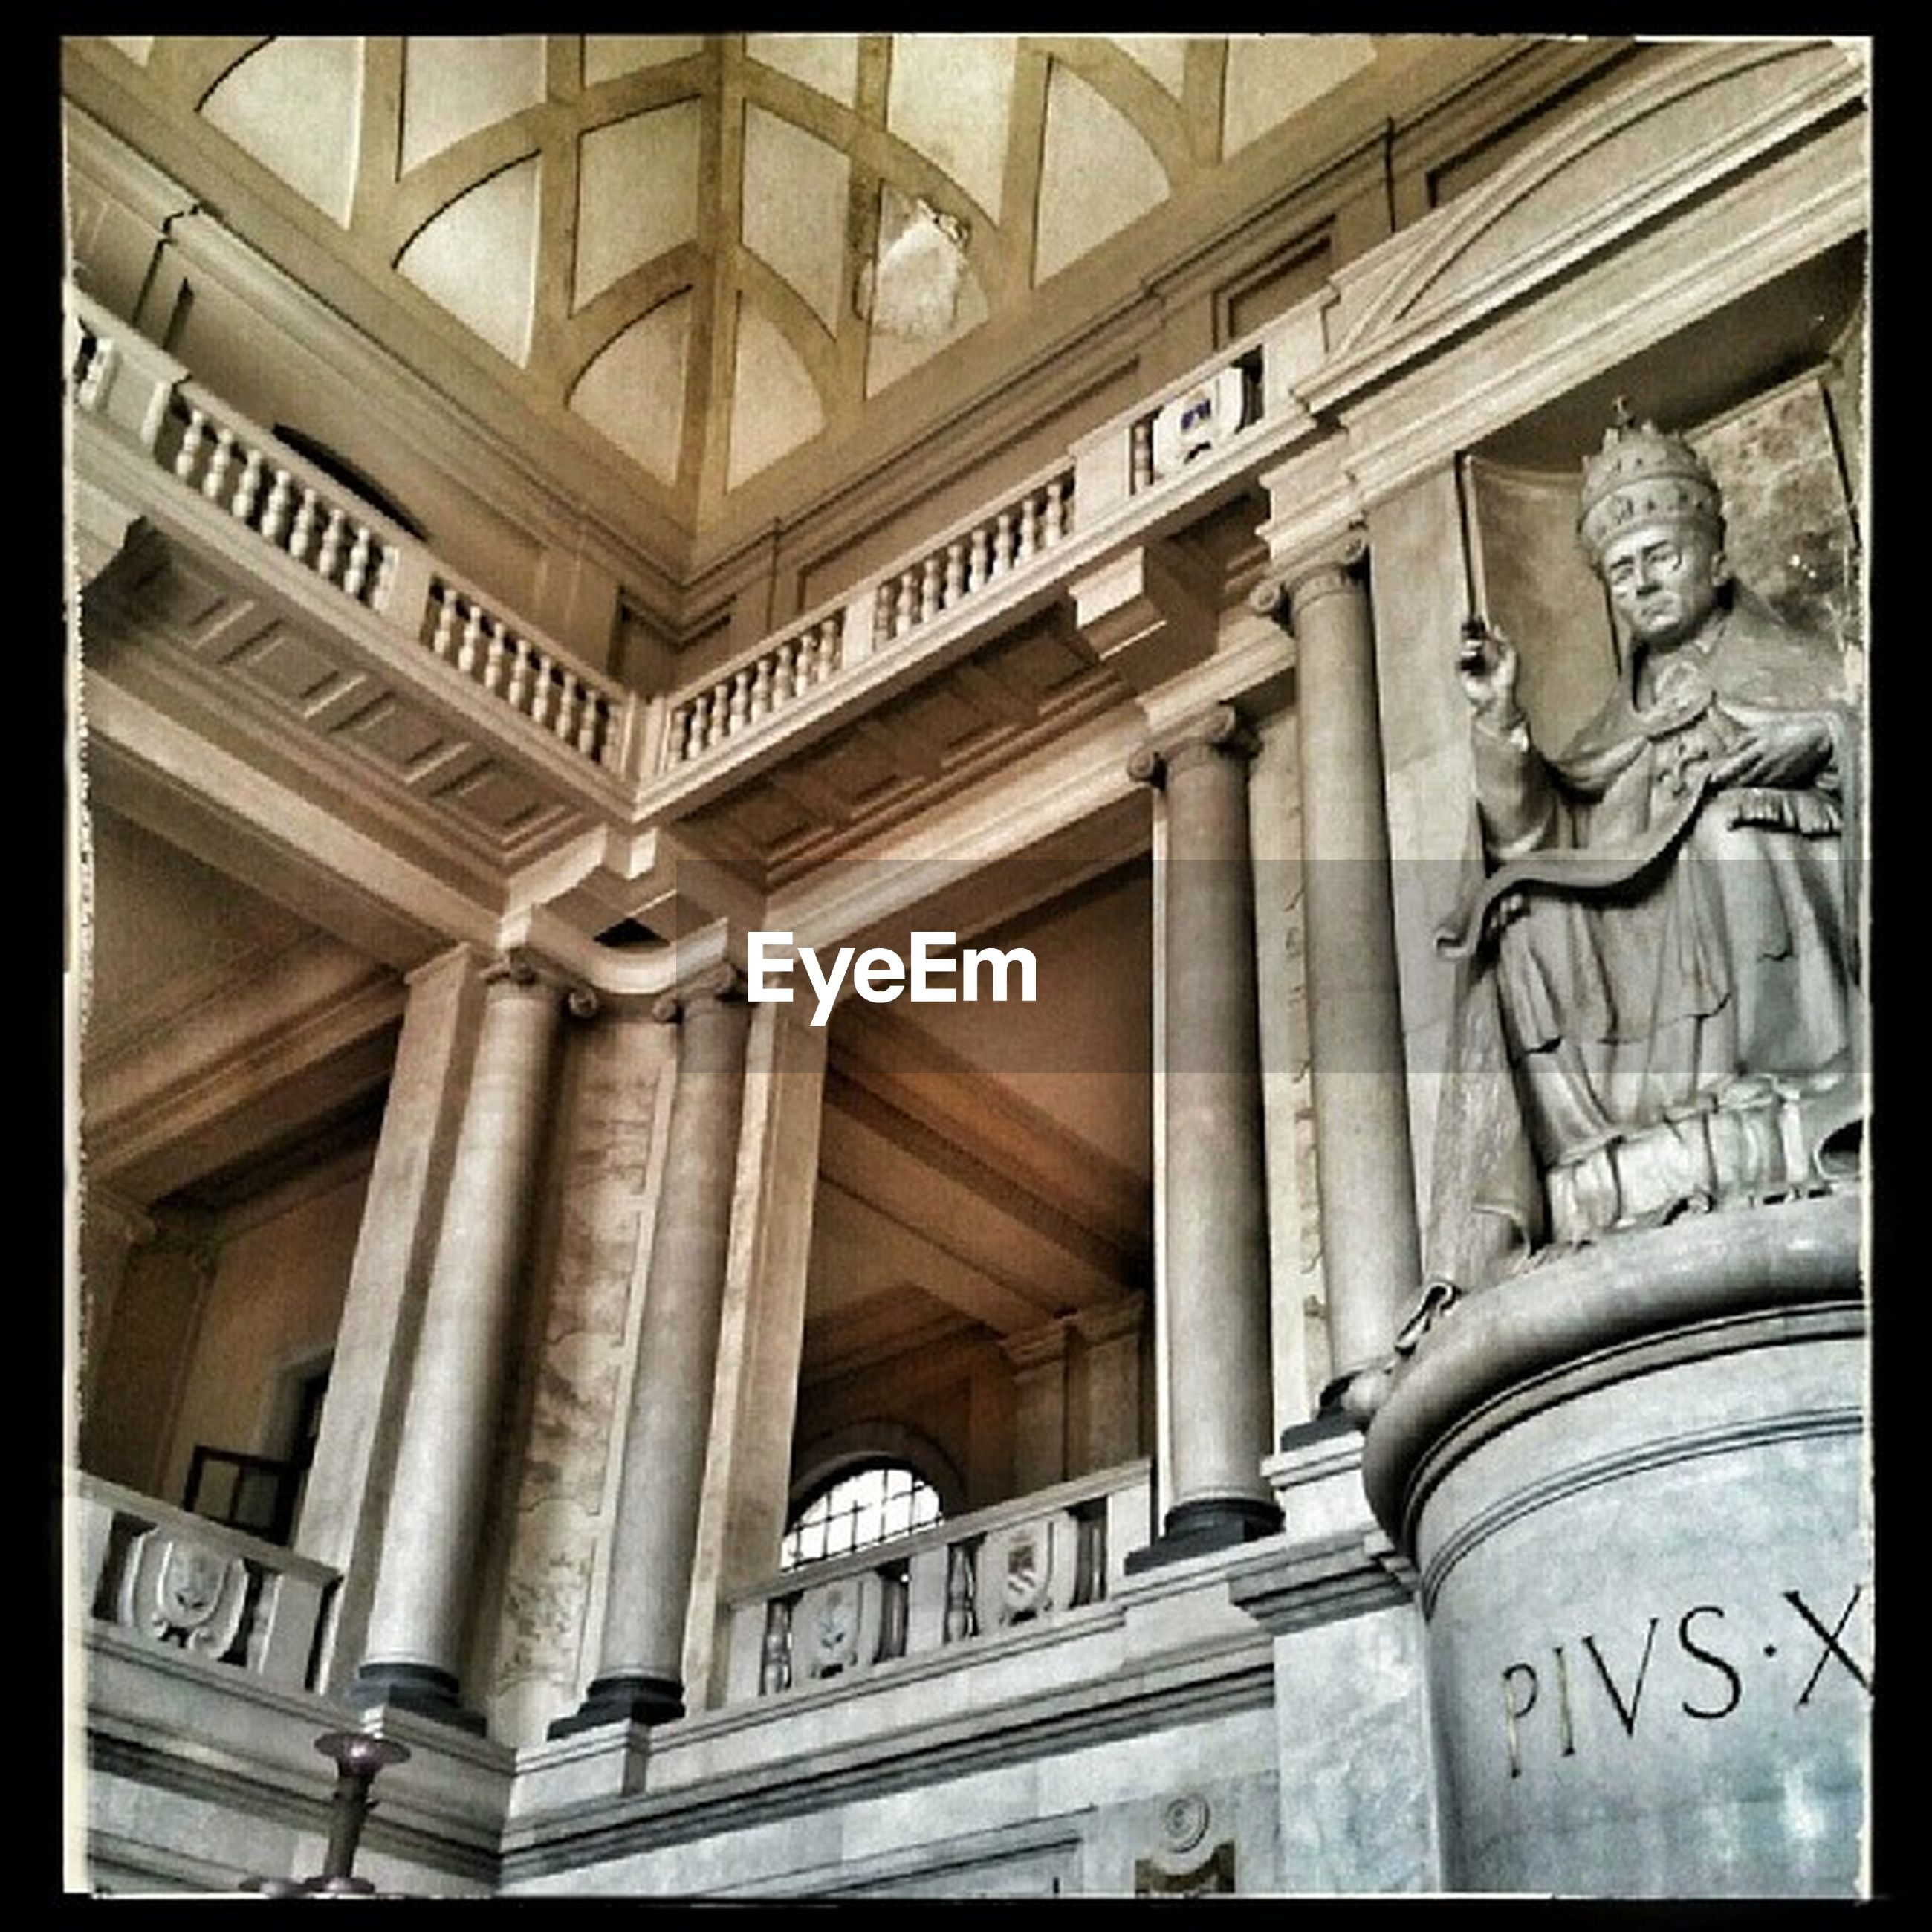 architecture, built structure, low angle view, art and craft, architectural column, art, column, history, human representation, creativity, ornate, carving - craft product, text, building exterior, indoors, arch, famous place, travel destinations, design